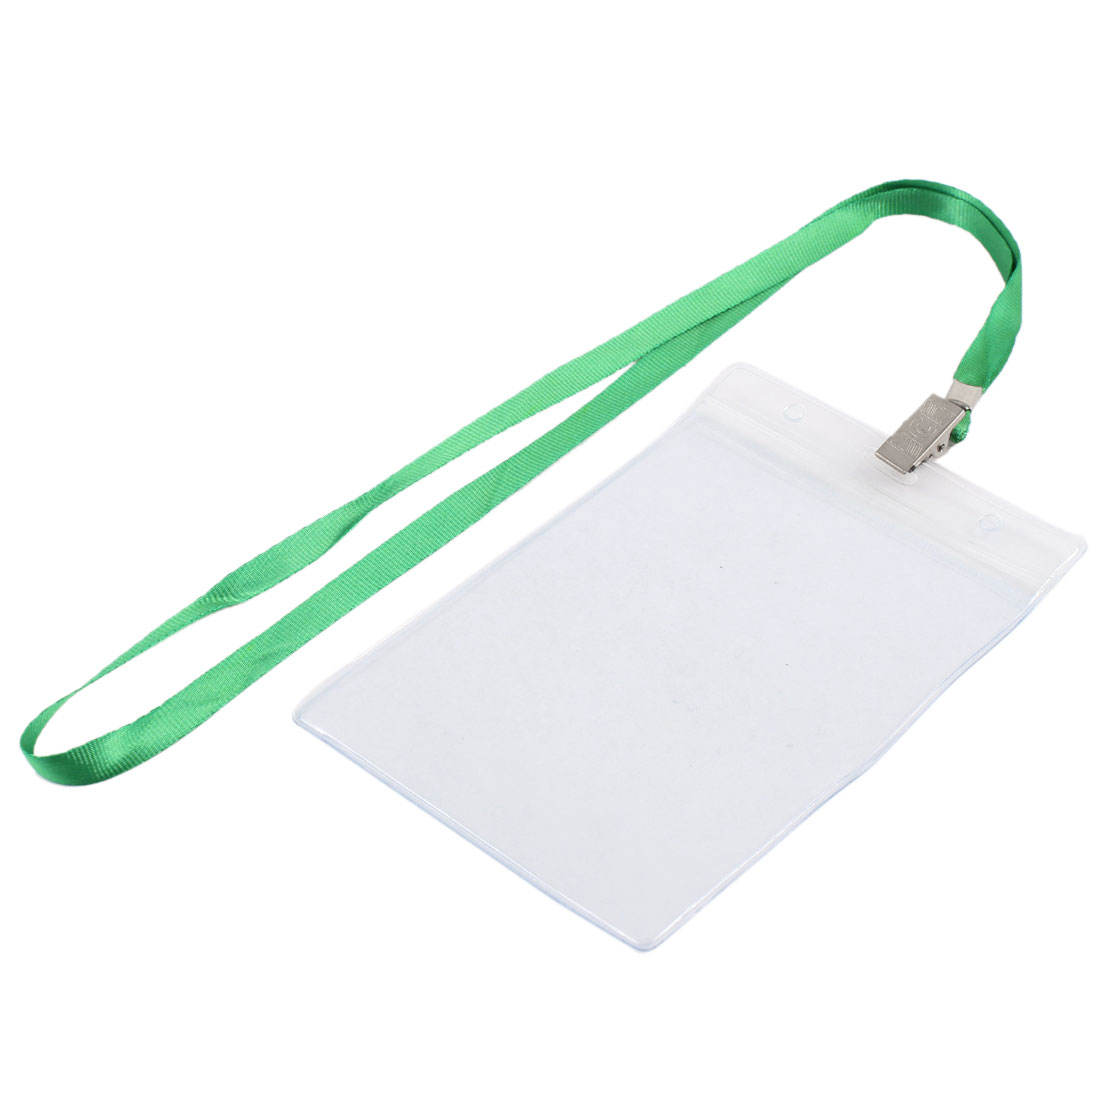 Clear Plastic Vertical ID Office Exhibition Badge Card Holder w Green Lanyard